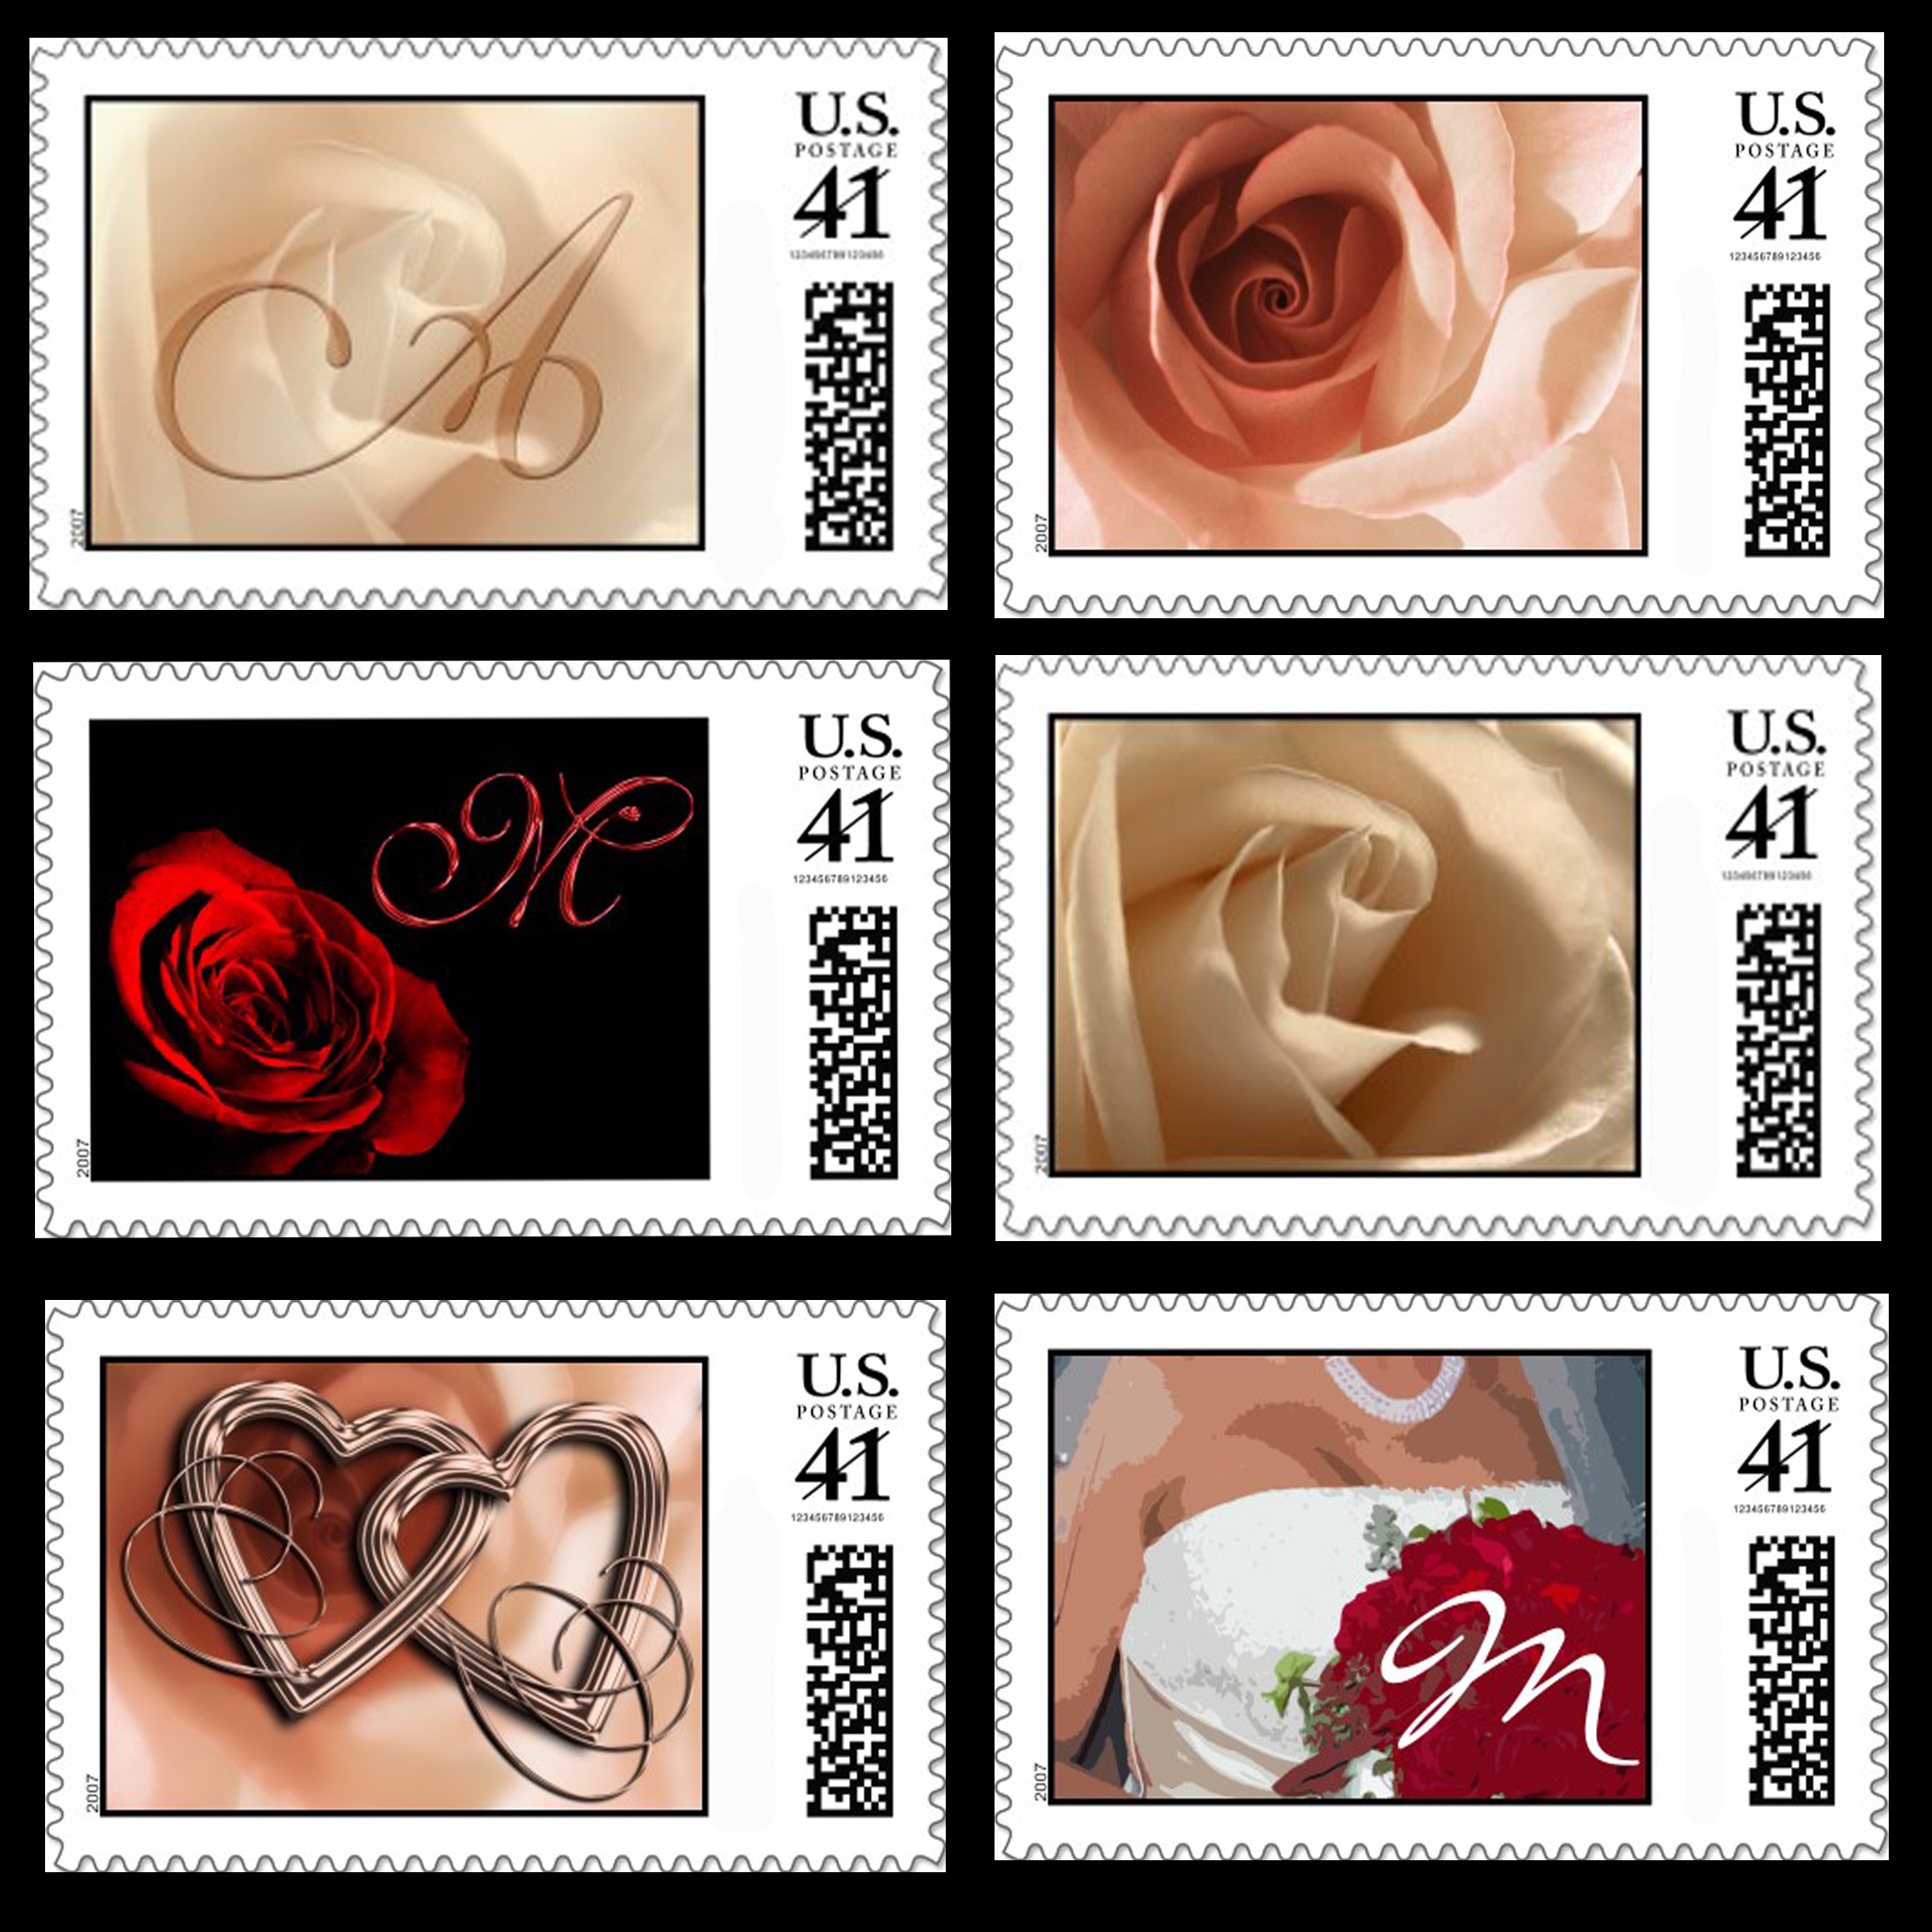 prweb wedding stamps Wedding Postage Stamp SamplerThis is a sampling of the many customizable wedding stamps available from ArtisticPostage com